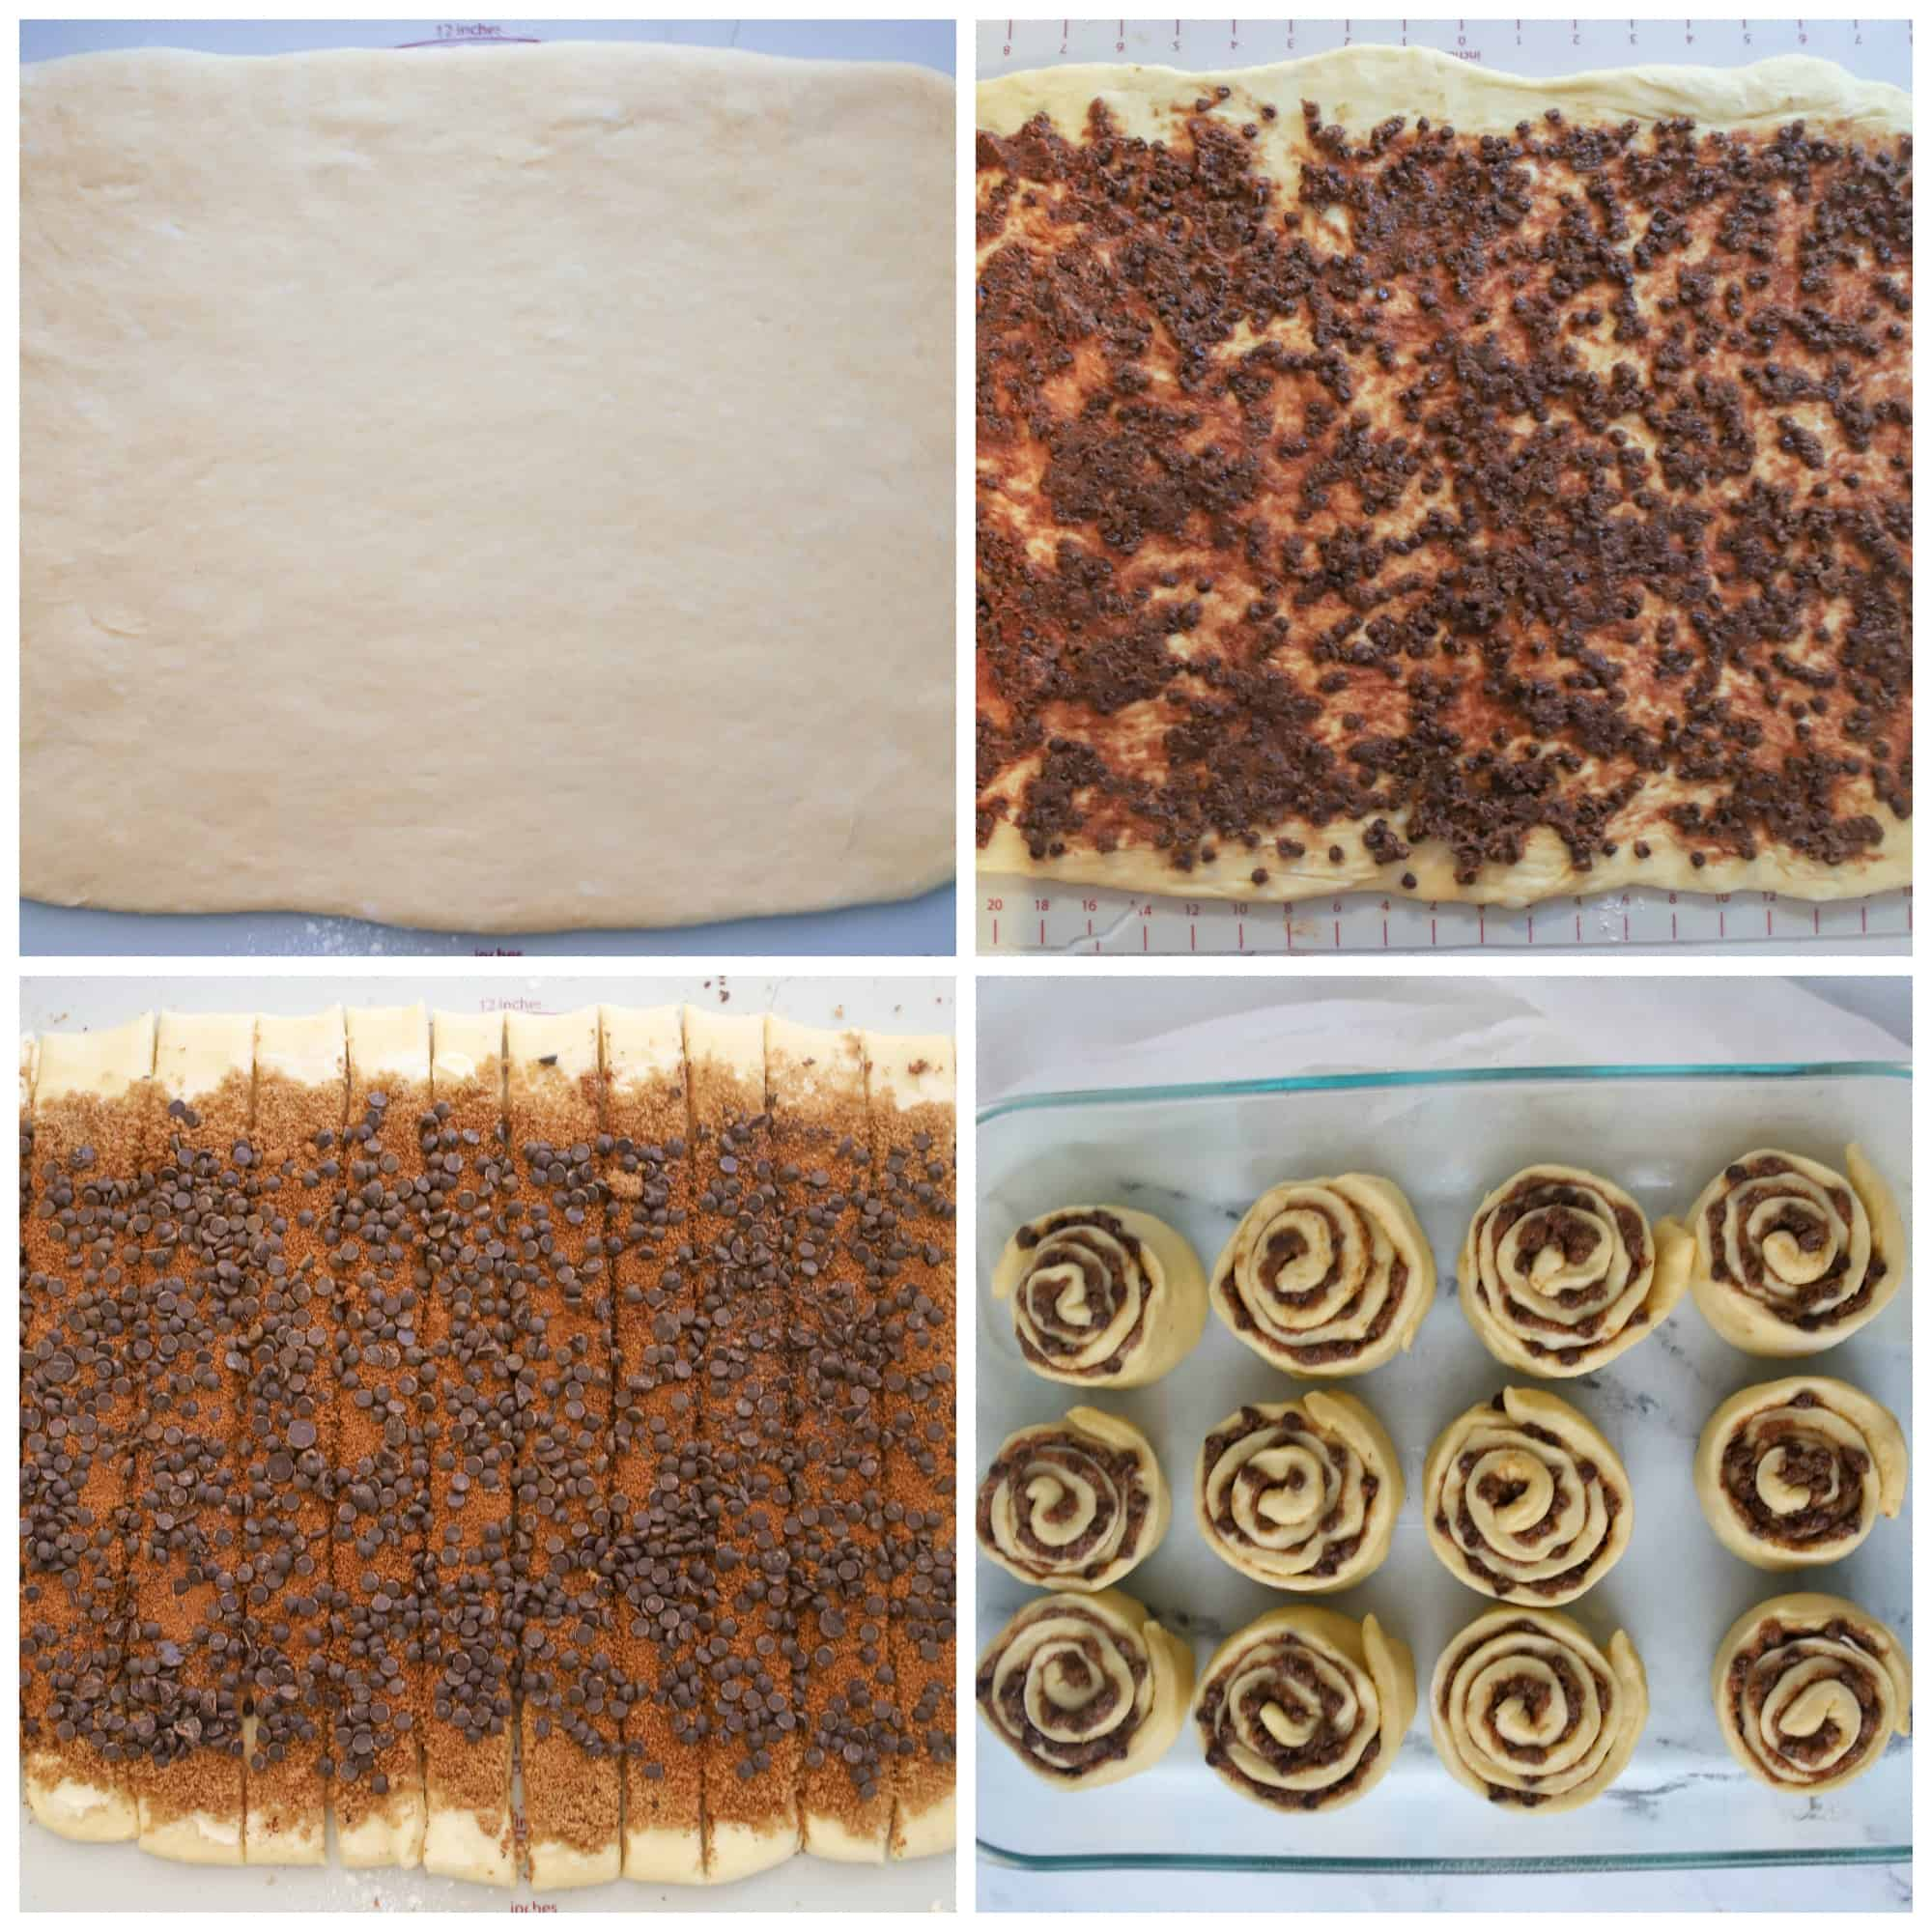 dough being spread with filling, cut into strips and rolled into spirals